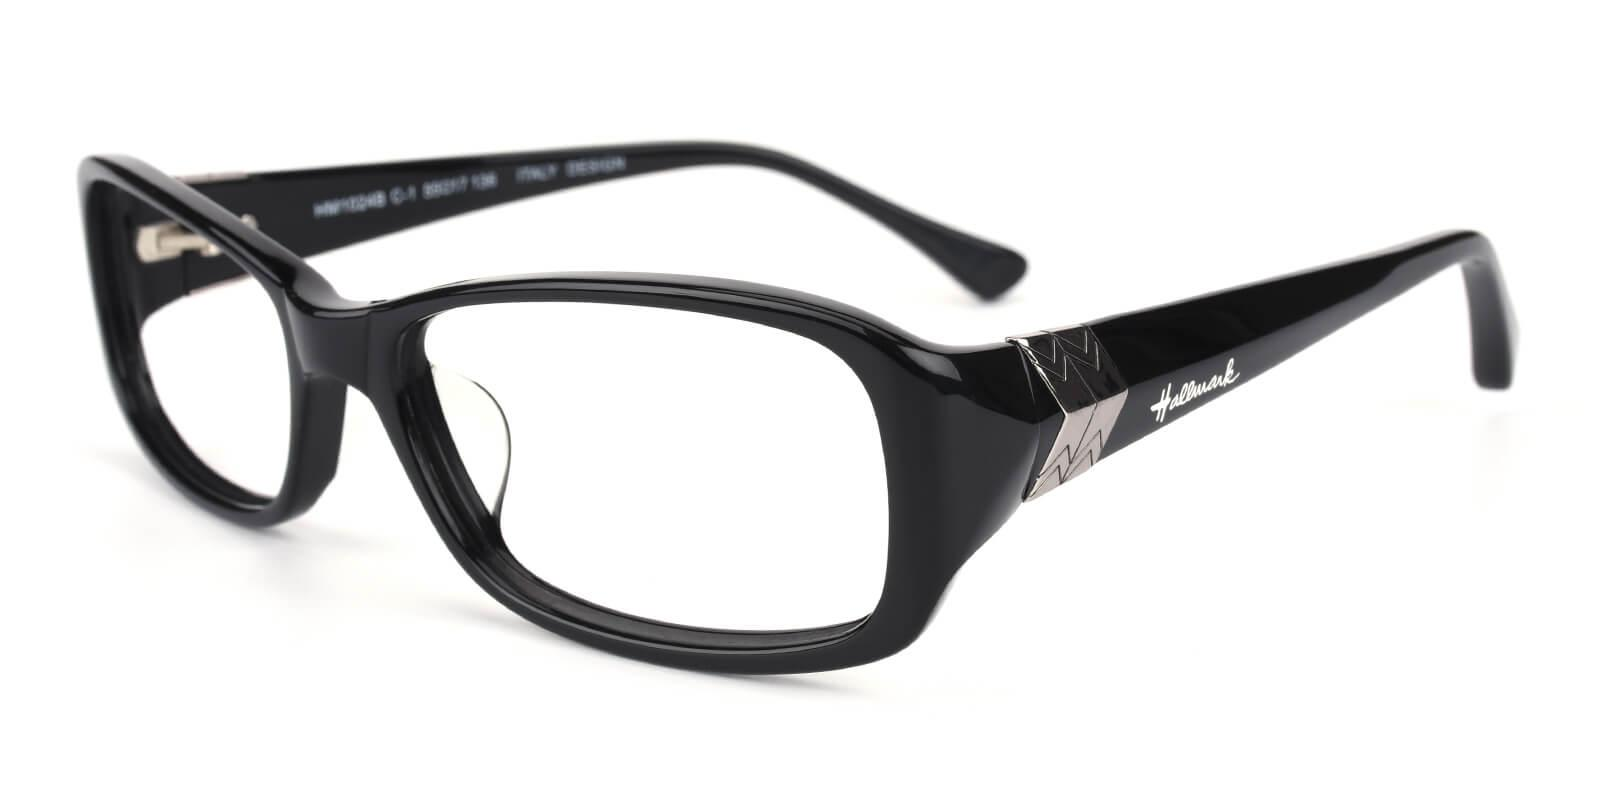 Hgytical-Black-Rectangle-Acetate-Eyeglasses-additional1